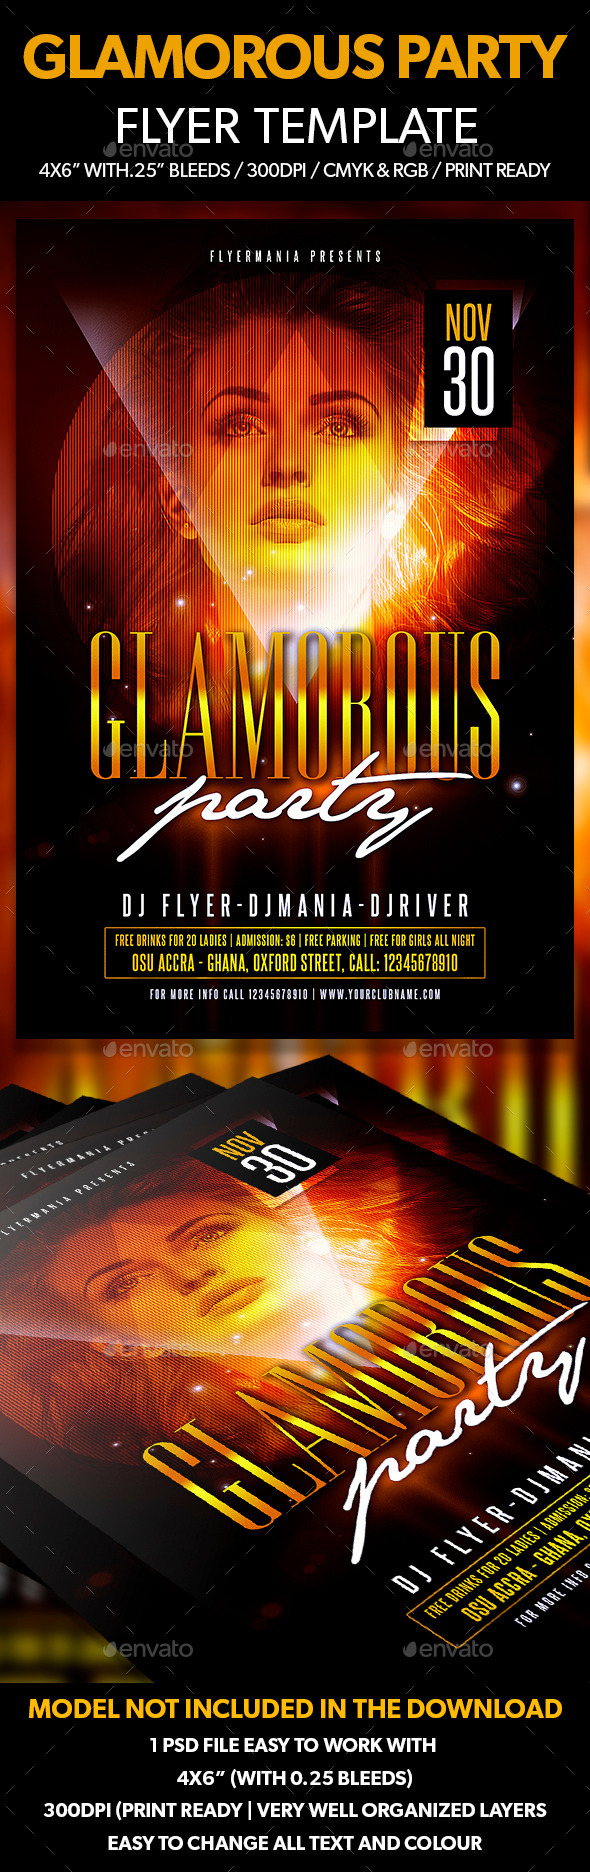 Glamorous Party Flyer Template - Flyers Print Templates